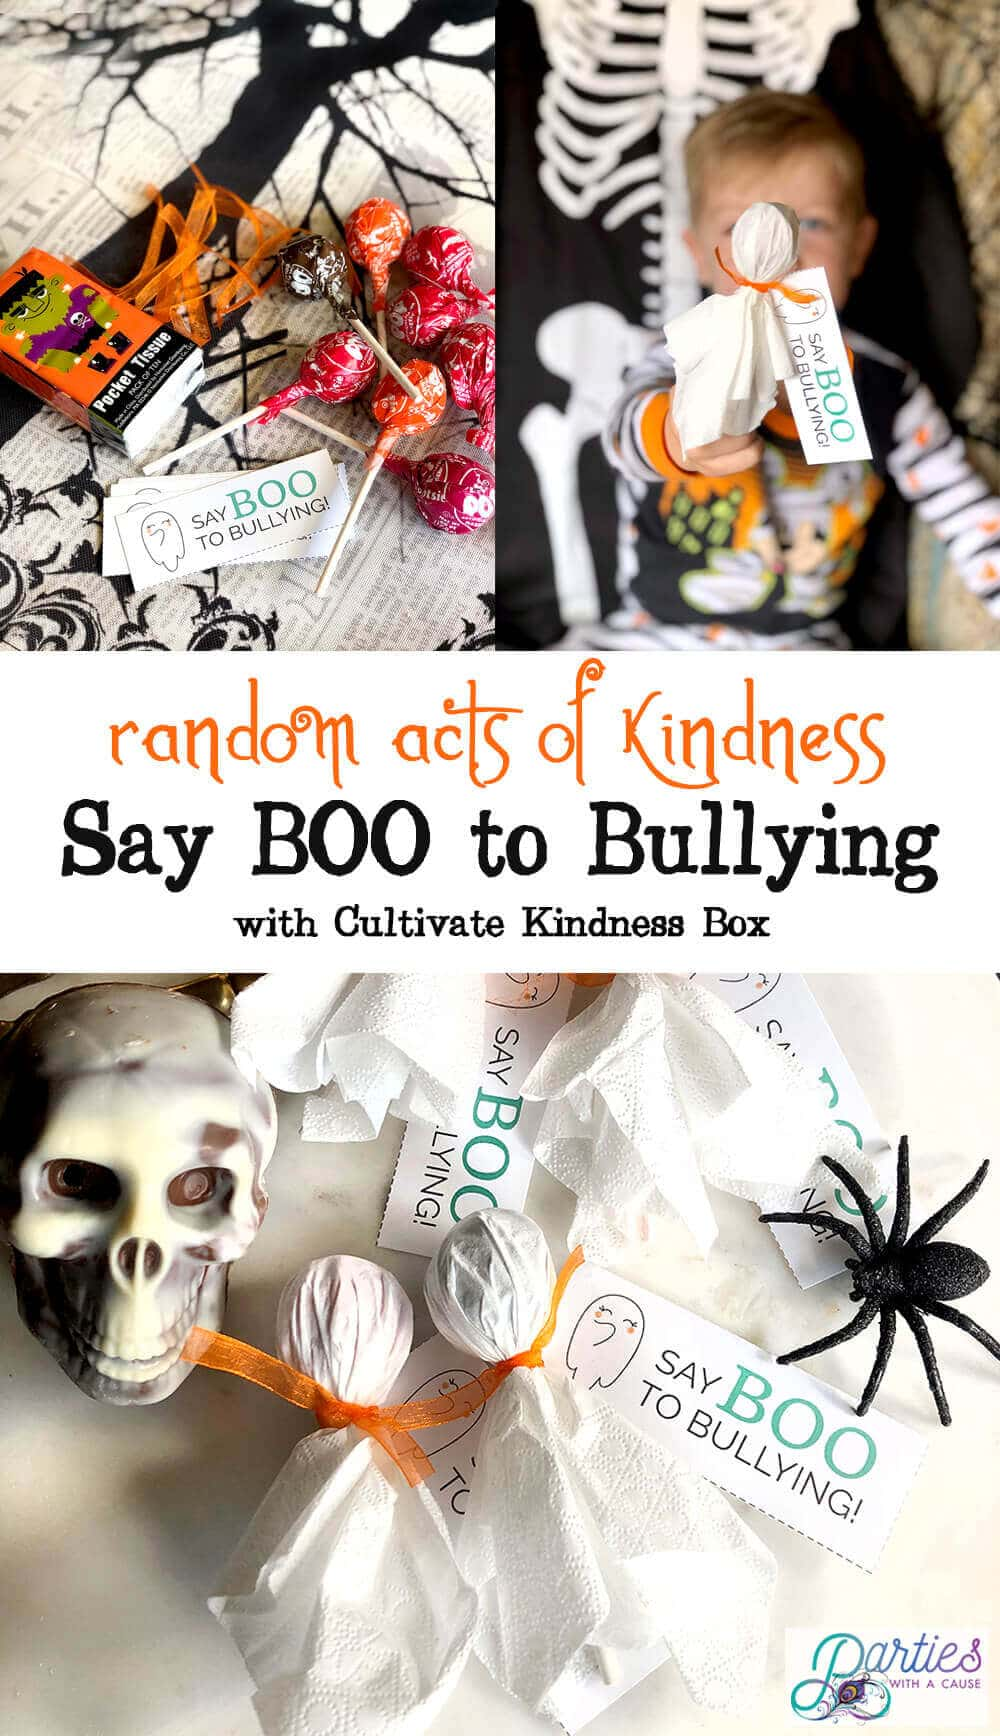 Say BOO to bullying with a Cultivate Kindness Box